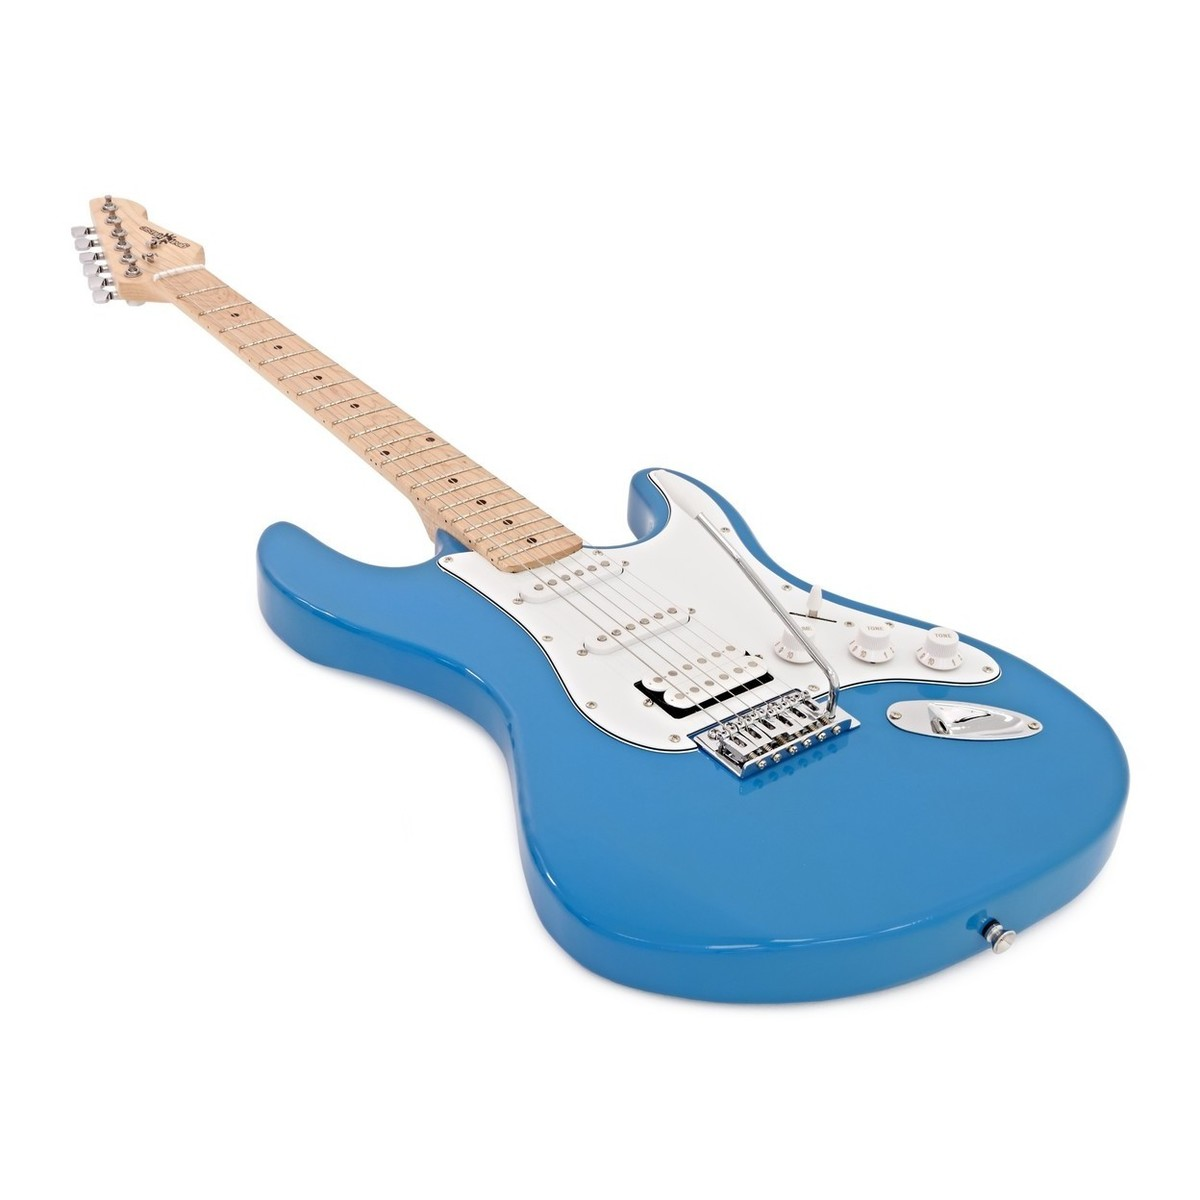 la ii electric guitar hss amp pack blue at gear4music. Black Bedroom Furniture Sets. Home Design Ideas